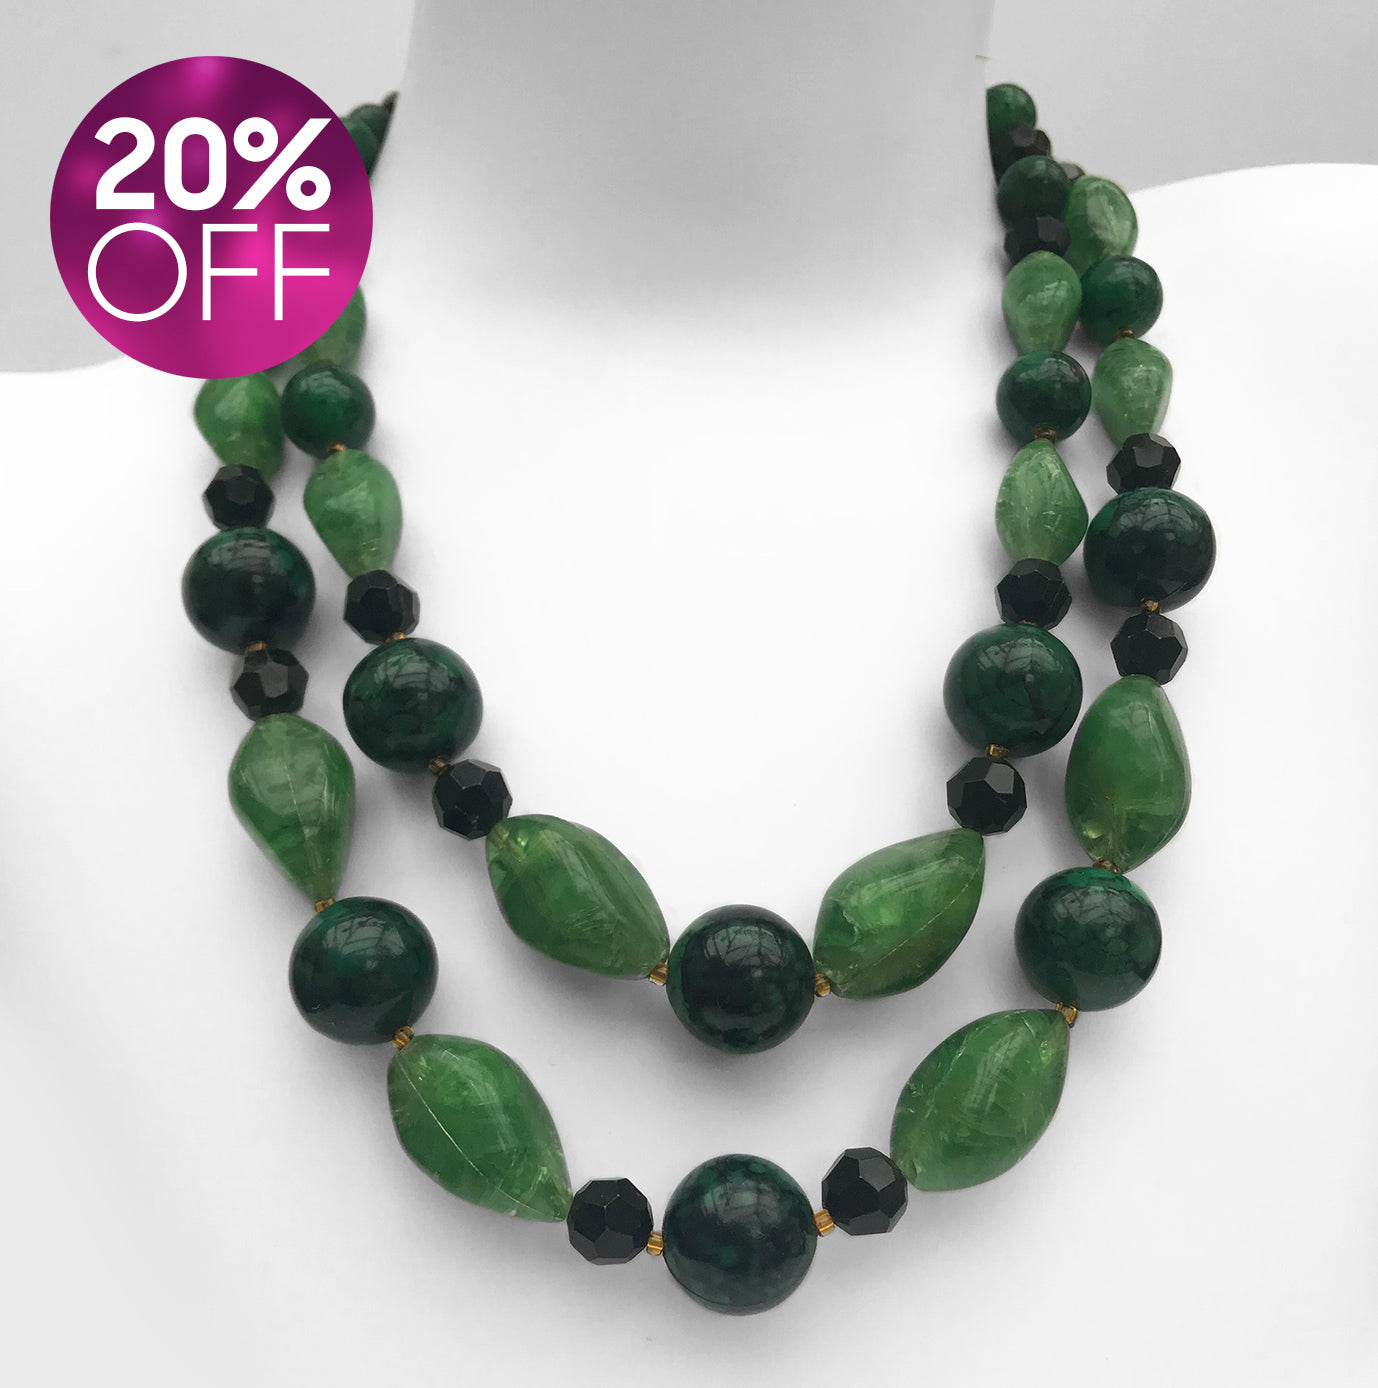 Vintage Green Plastic Necklace